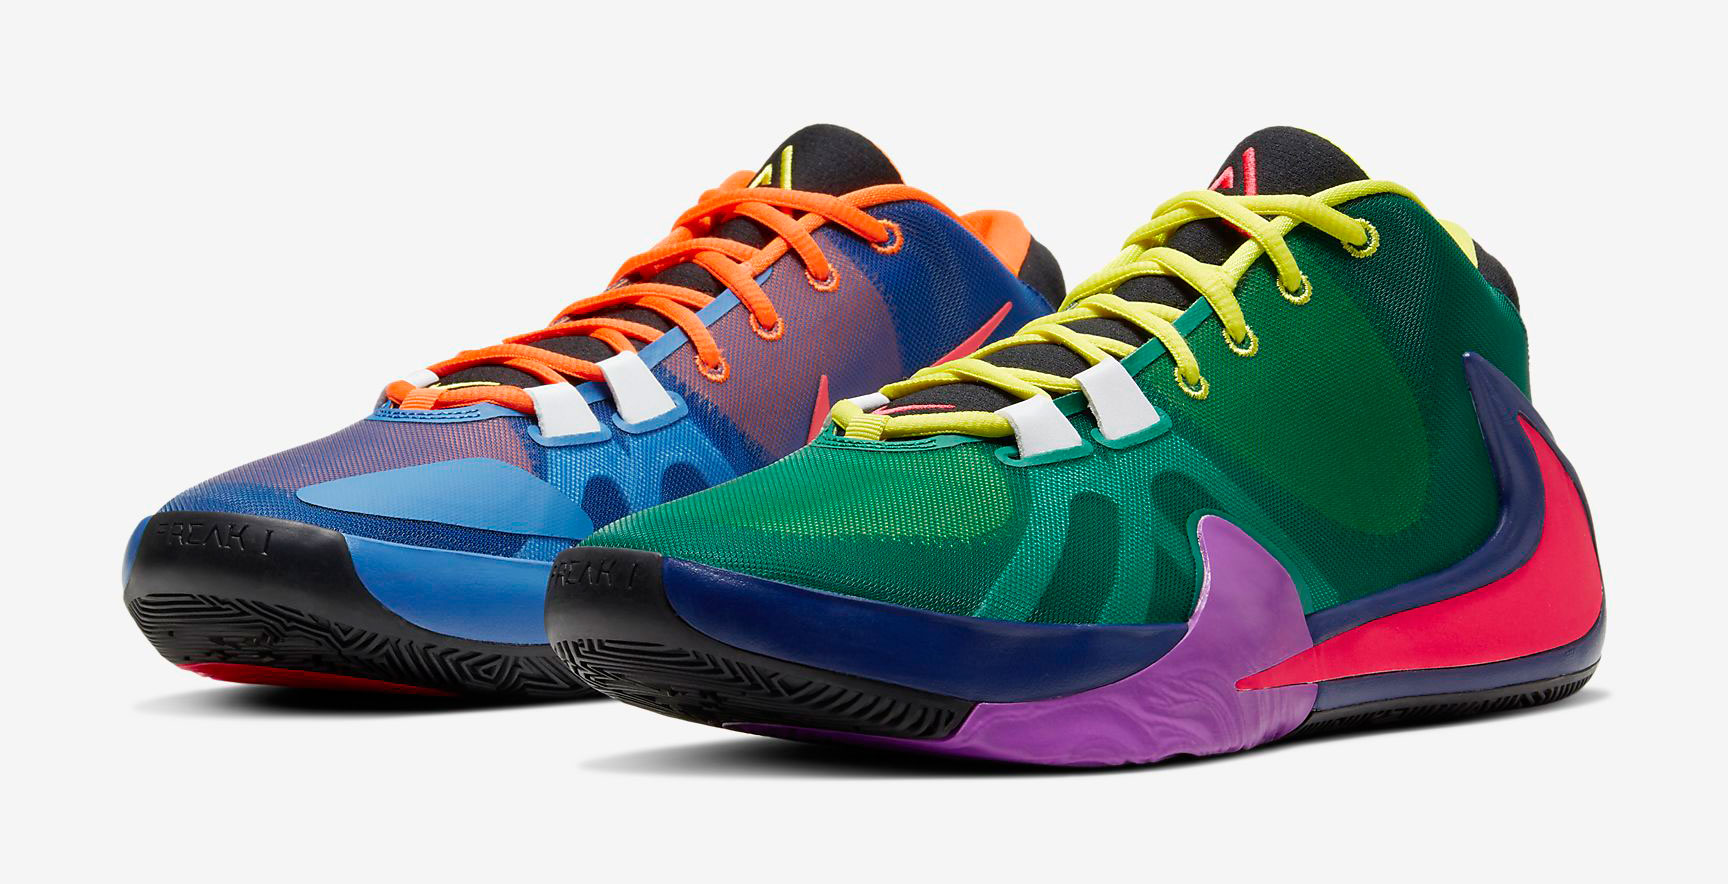 nike-zoom-freak-1-multi-color-release-date